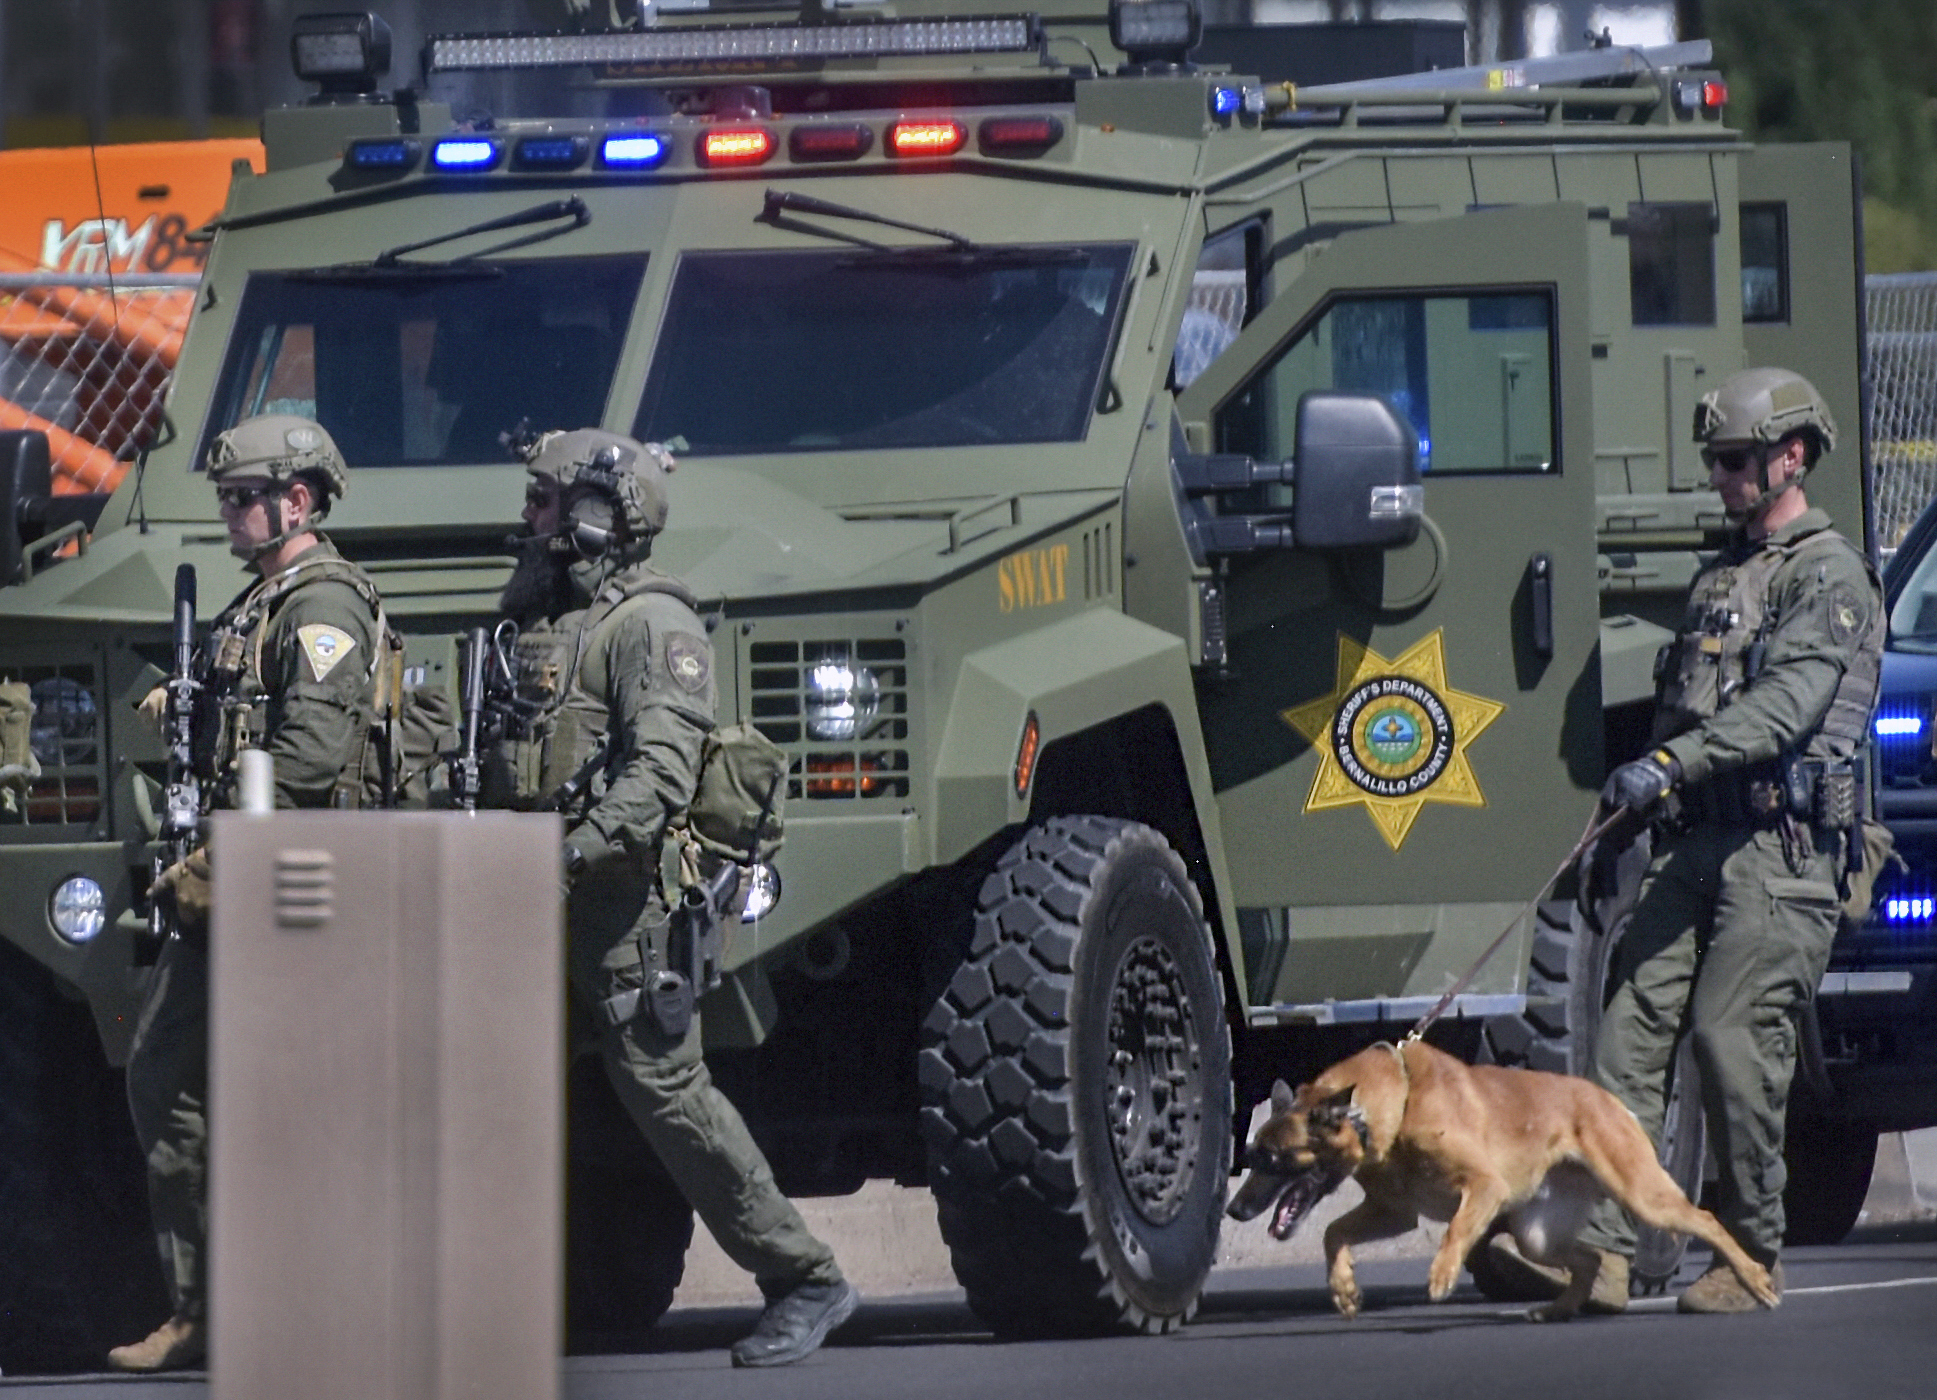 Tactical officers search for a suspect after a shootout that left multiple officers injured in northeast Albuquerque, N.M. on Thursday, Aug. 19, 2021. (Robert Browman/The Albuquerque Journal via AP)